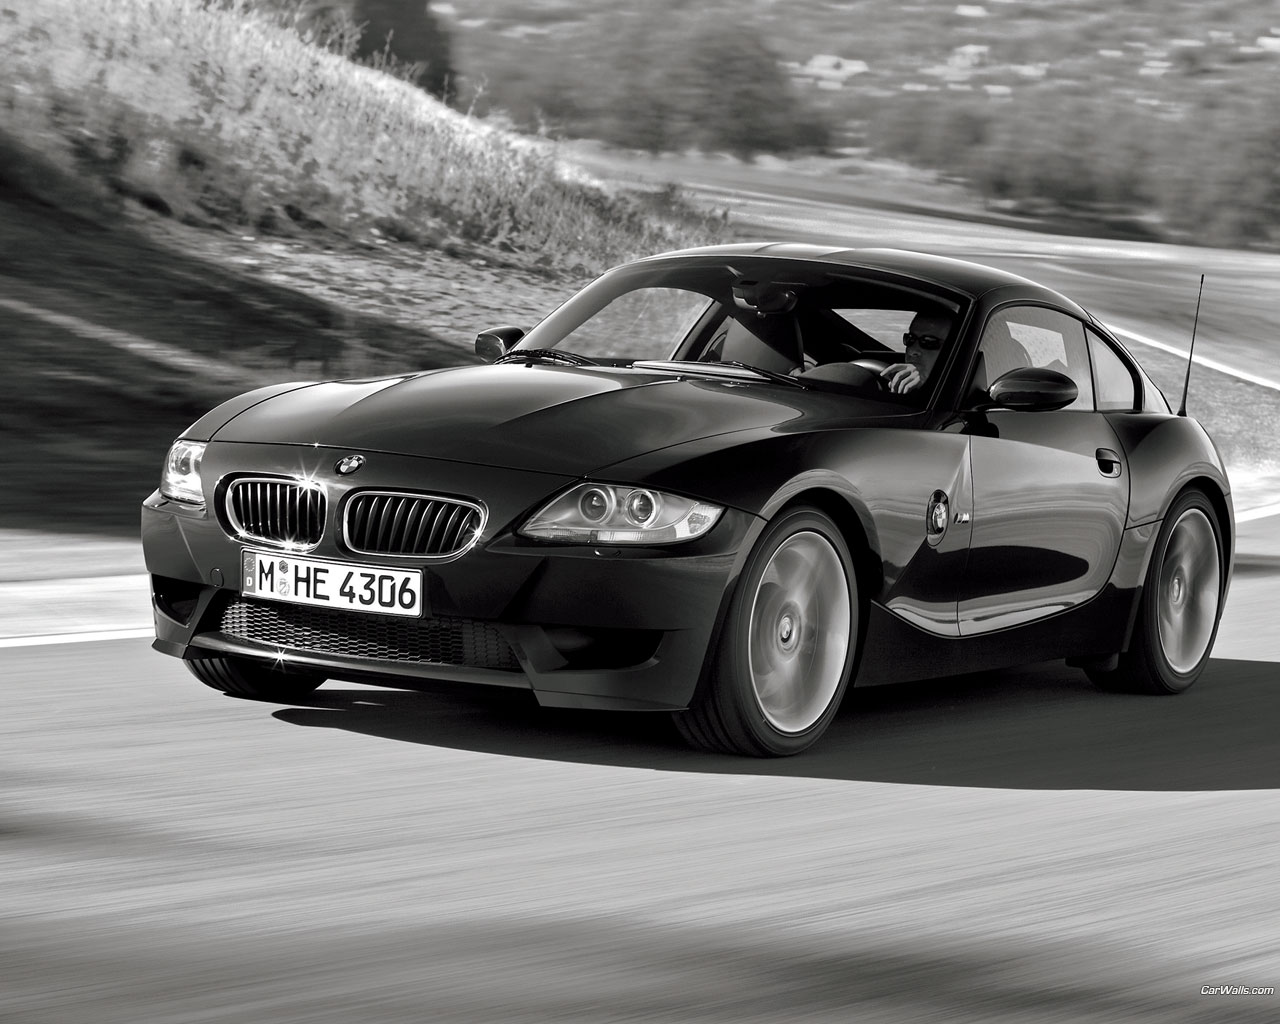 Bmw Z4 M Coupe 1280x1024 B43 Tapety Na Pulpit